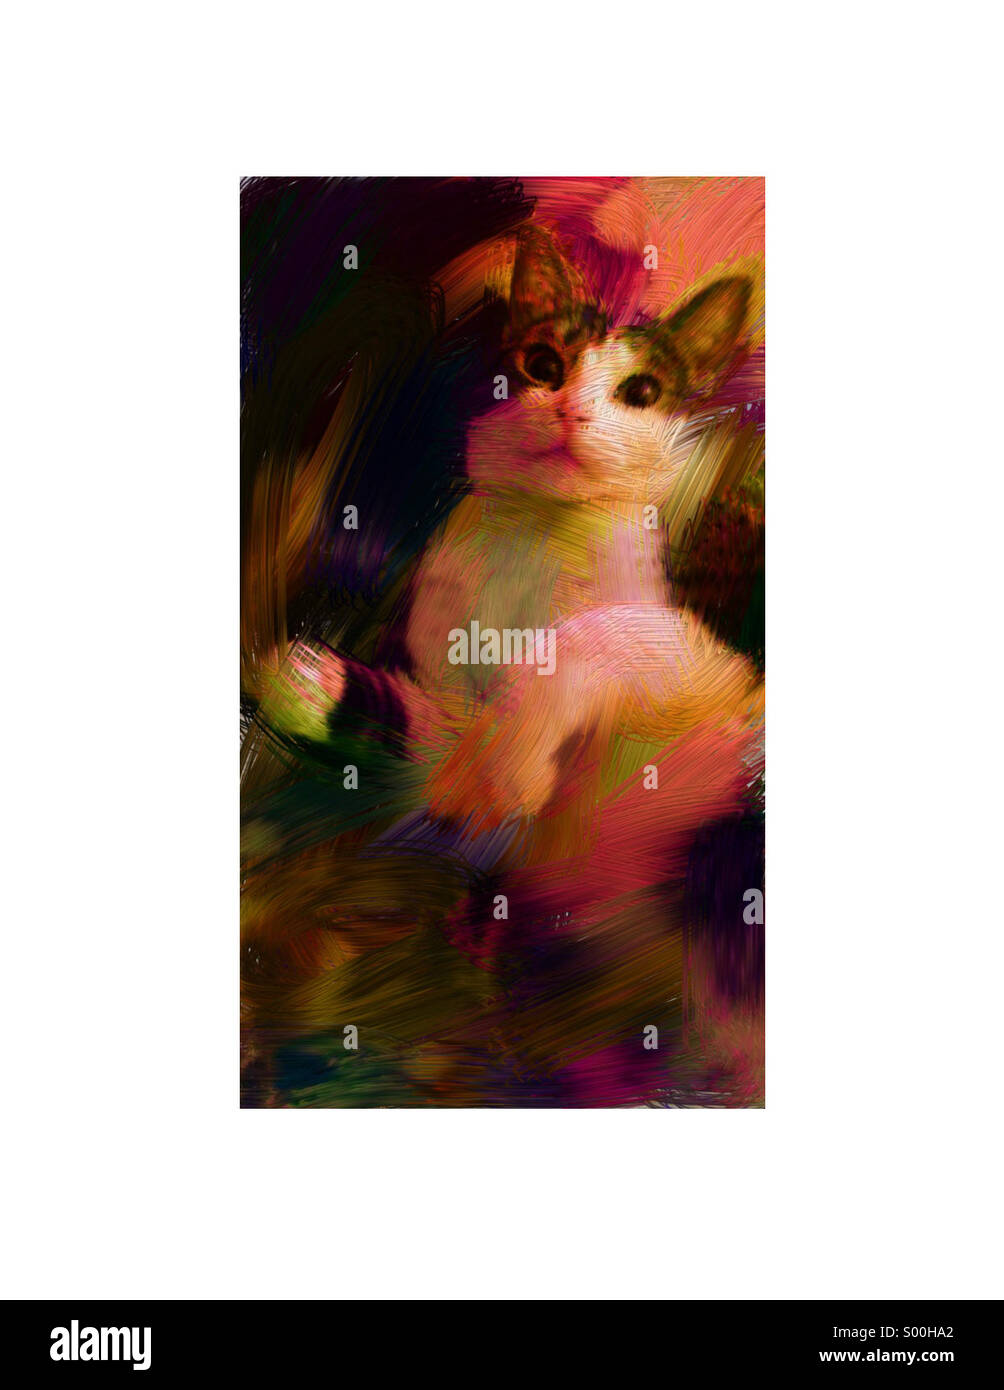 Artistic kitty cat looks as if painted. - Stock Image